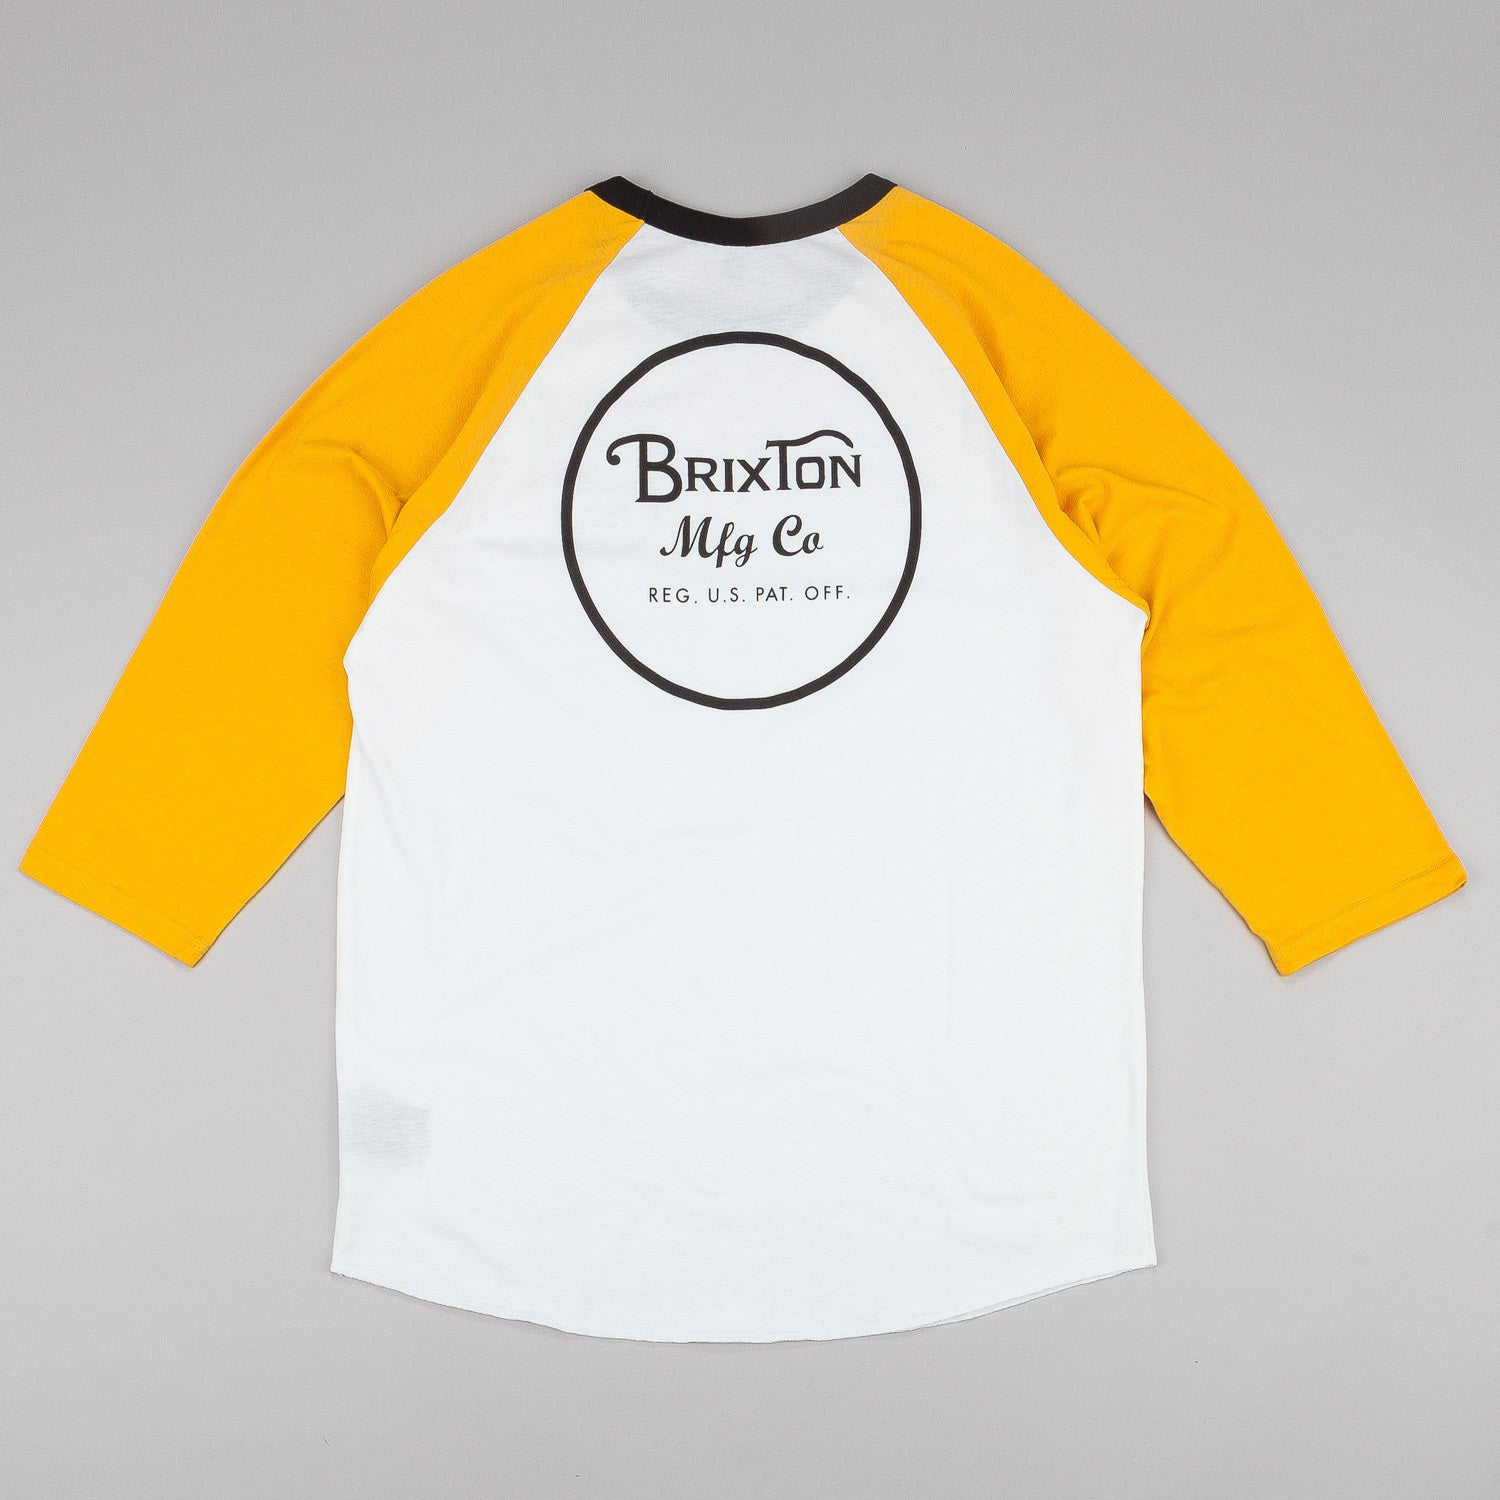 Brixton Wheeler 3/4 Sleeve Raglan T-Shirt - White / Gold